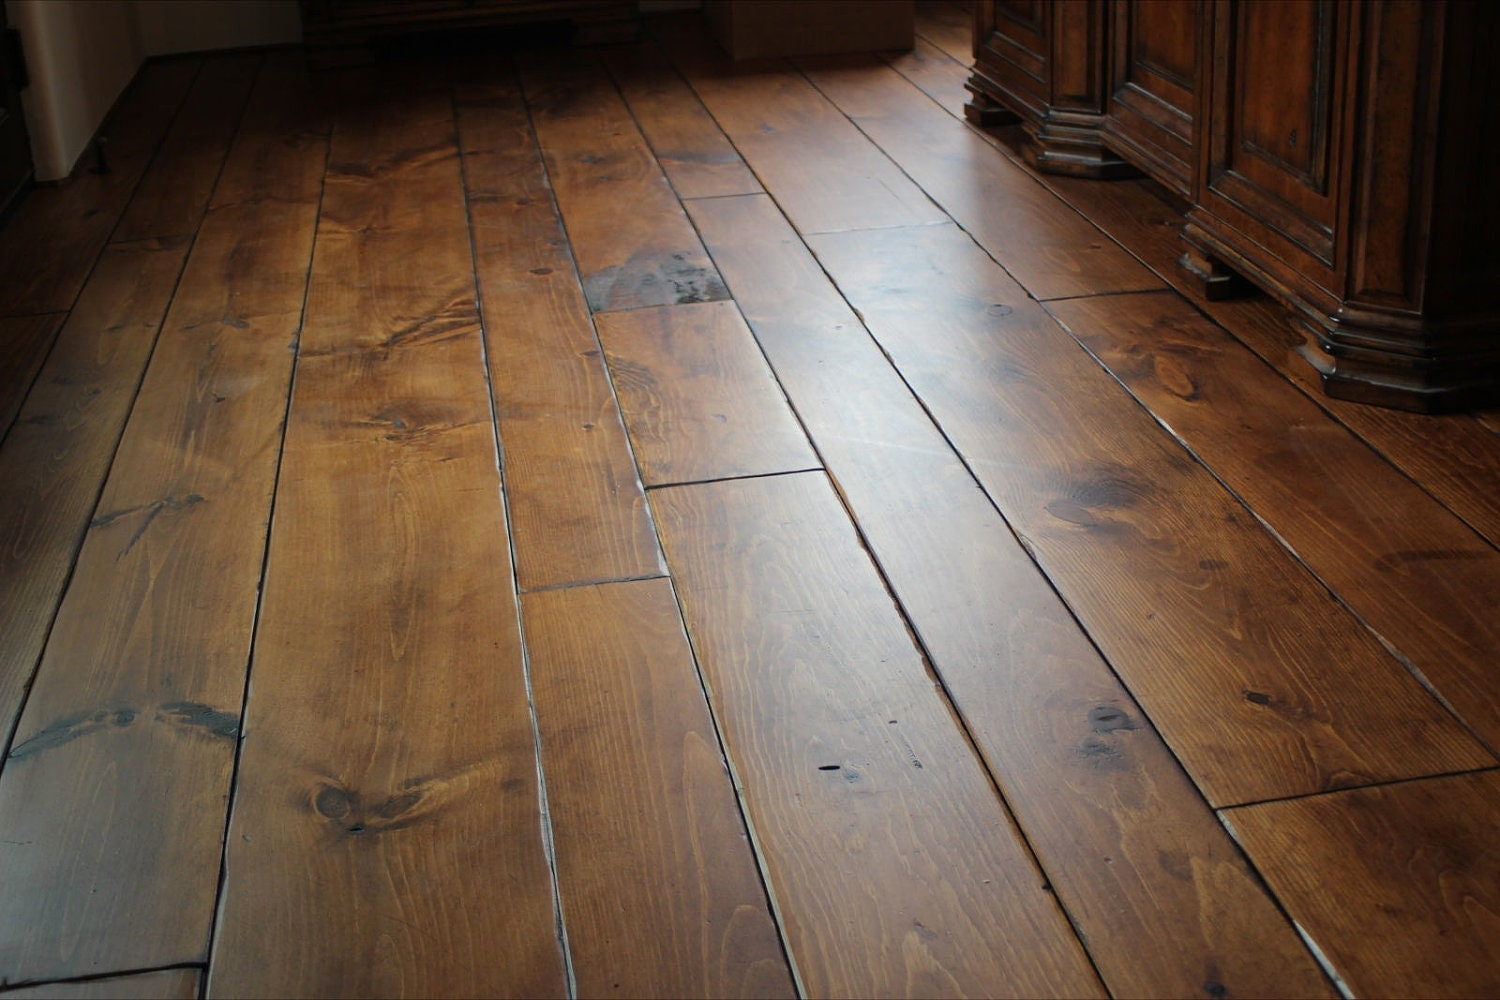 Eastern white pine old growth hardwood flooring solid wood for Unfinished hardwood floors